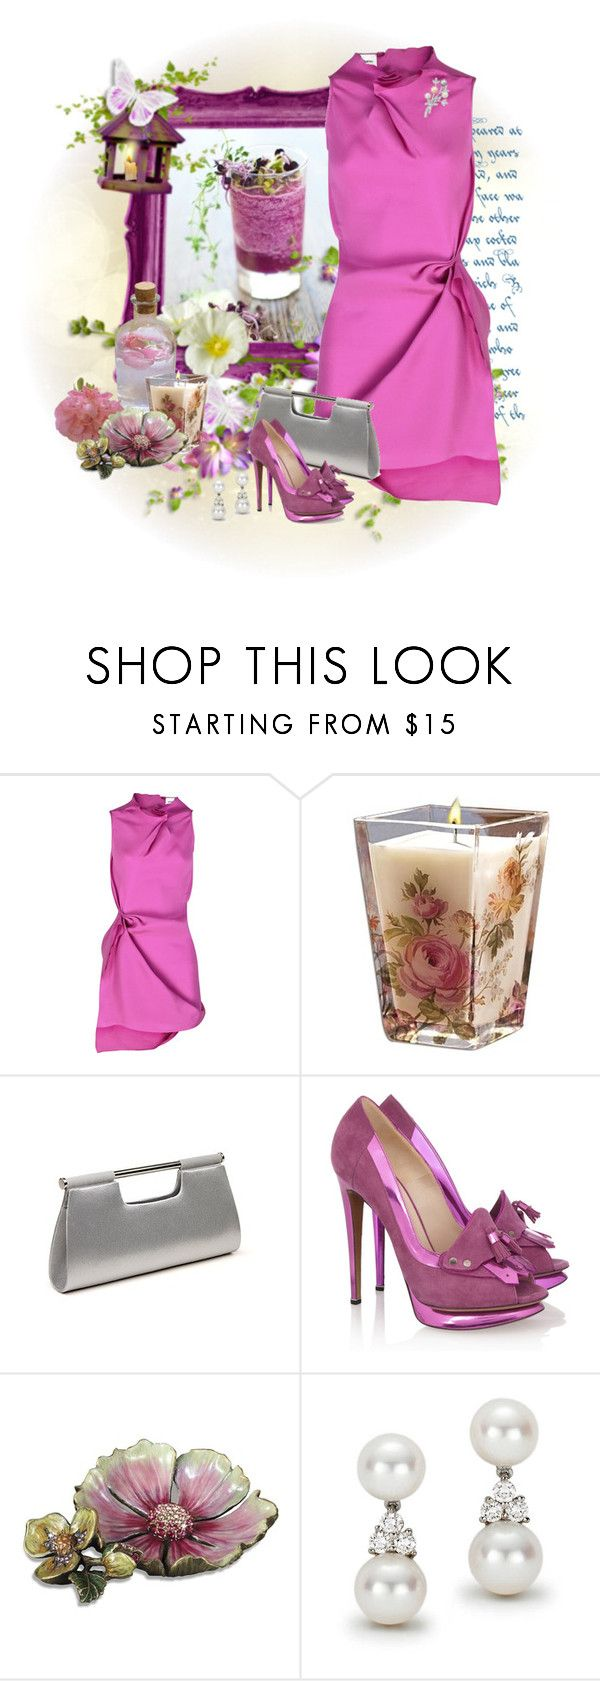 """""""Pivonka#565"""" by lilikatka ❤ liked on Polyvore featuring beauty, RM by Roland Mouret, CO, La Regale, Nicholas Kirkwood, Jay Strongwater and Tiffany & Co."""